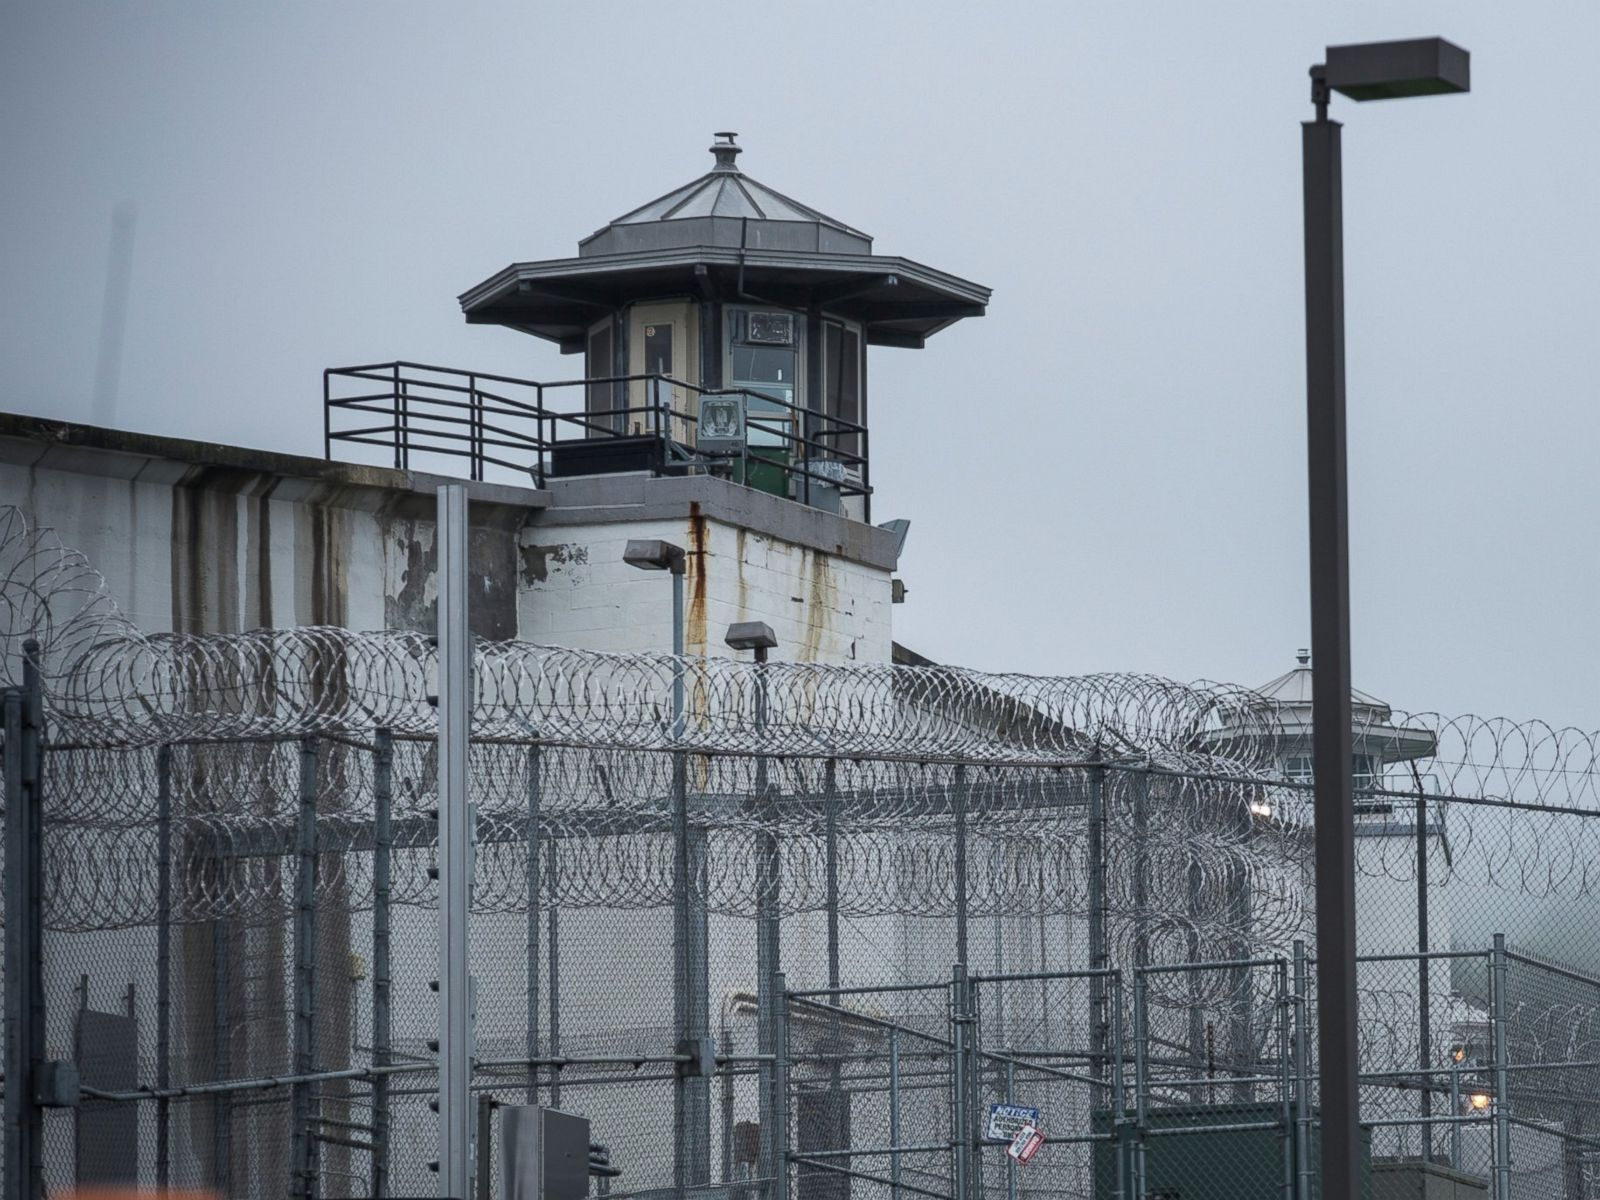 2 years ago, a pair of killers made a prison break straight